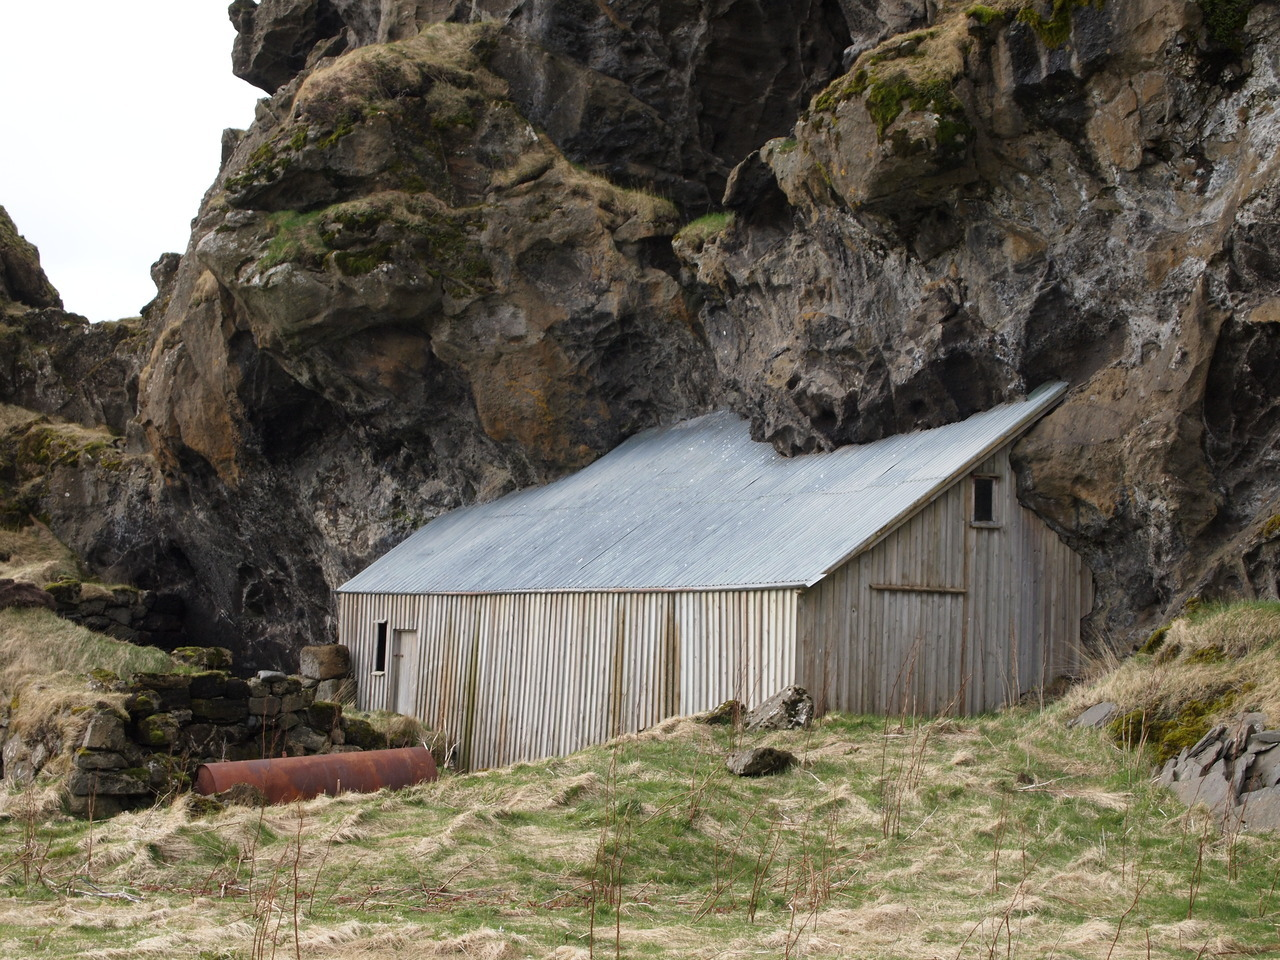 Barn in IcelandSubmitted by Raya Stefanova